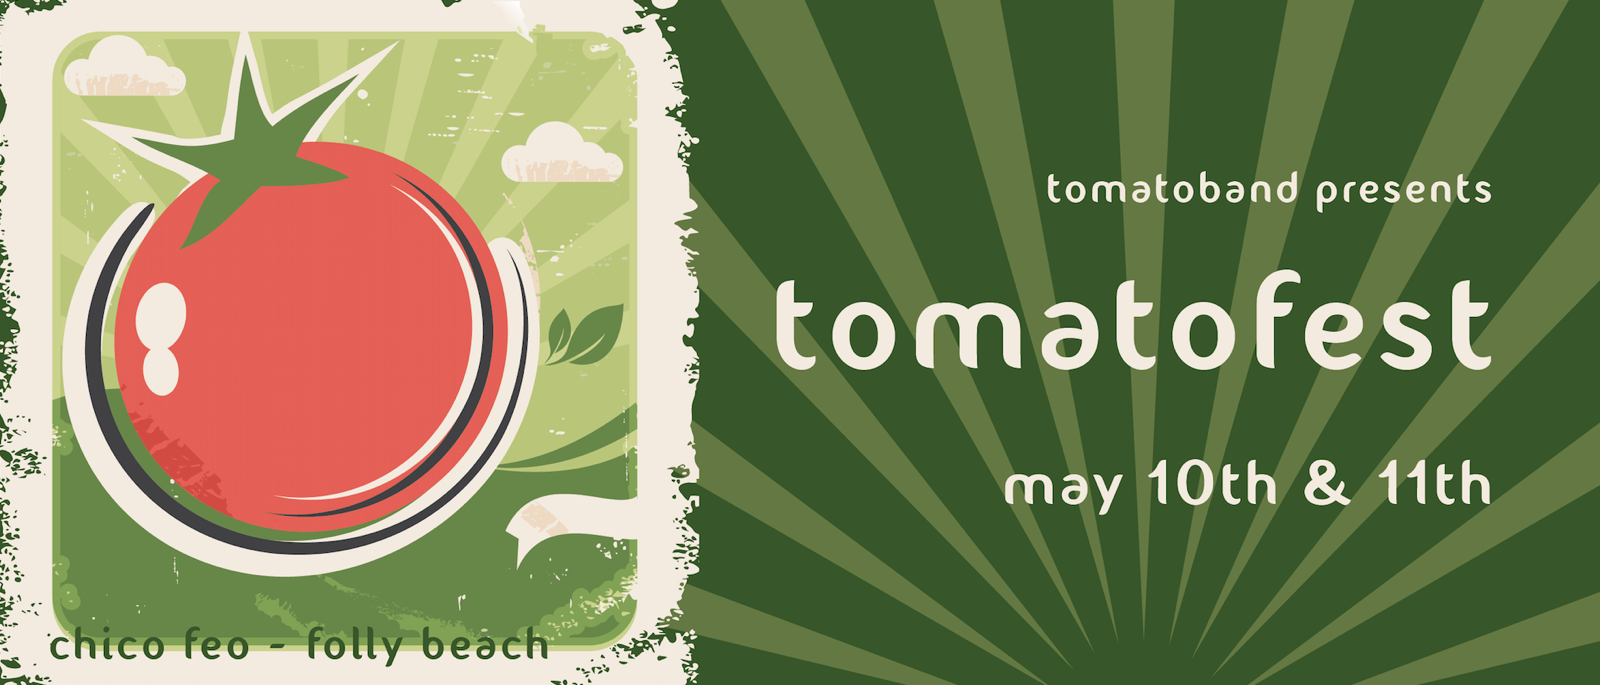 tomatofest_rectangle.png